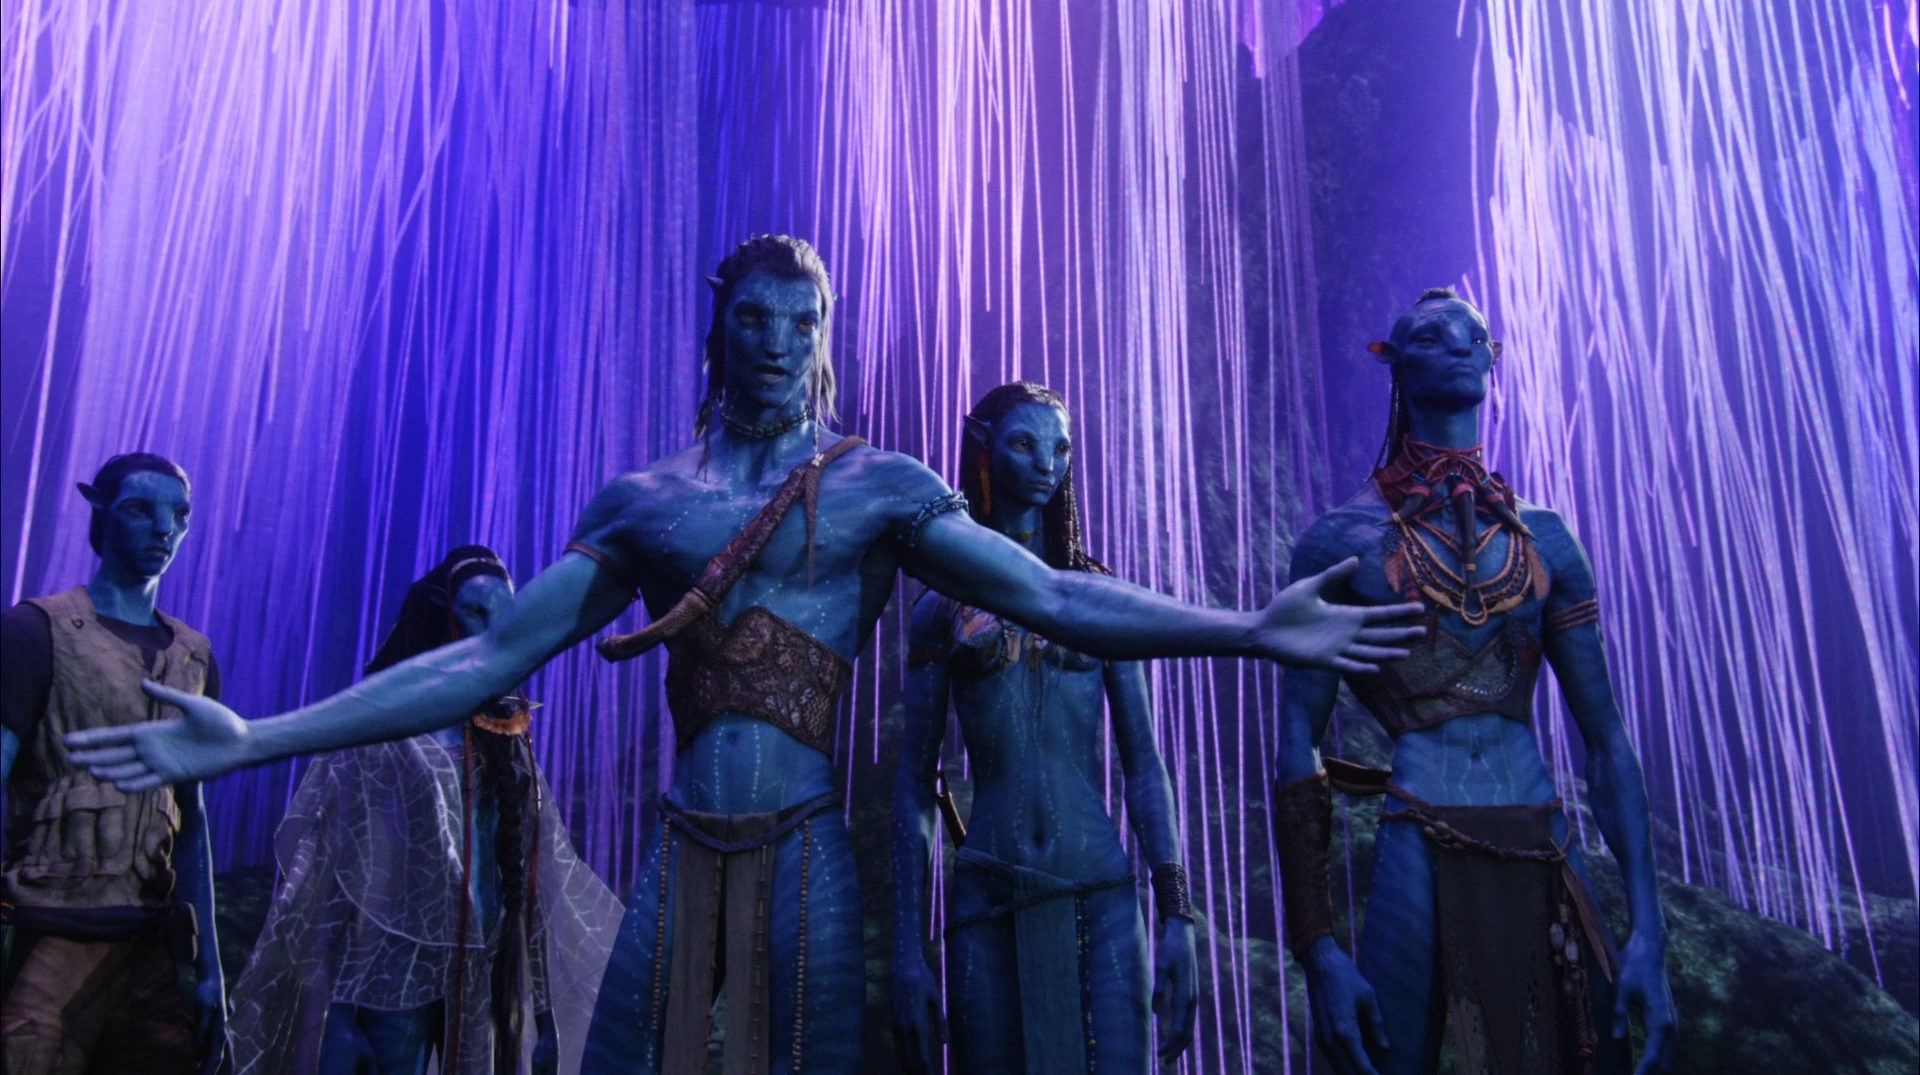 Avatar Lack of a Cultural Footprint Might Be Its Best Feature